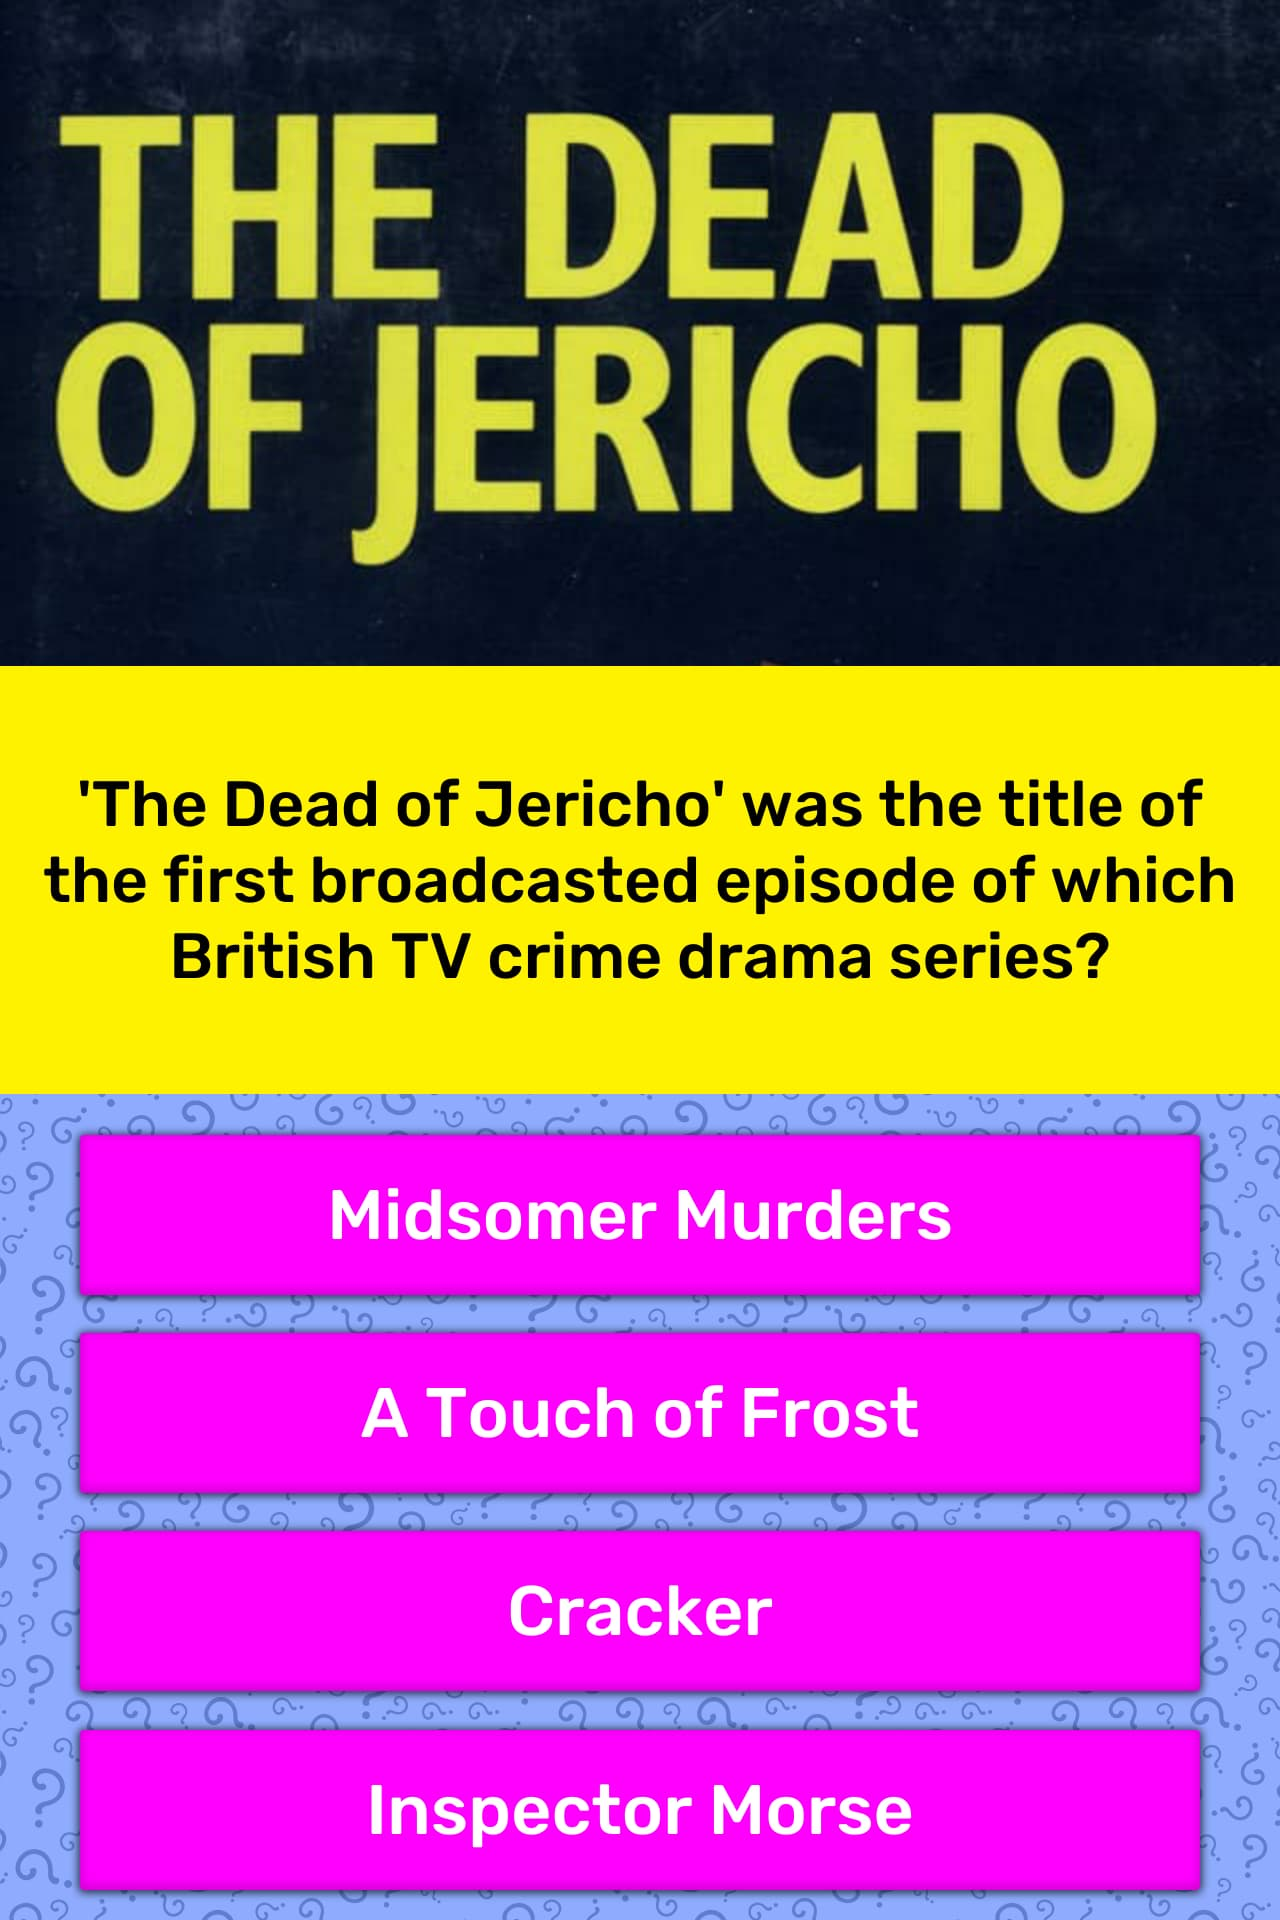 The Dead of Jericho' was the title    | Trivia Answers